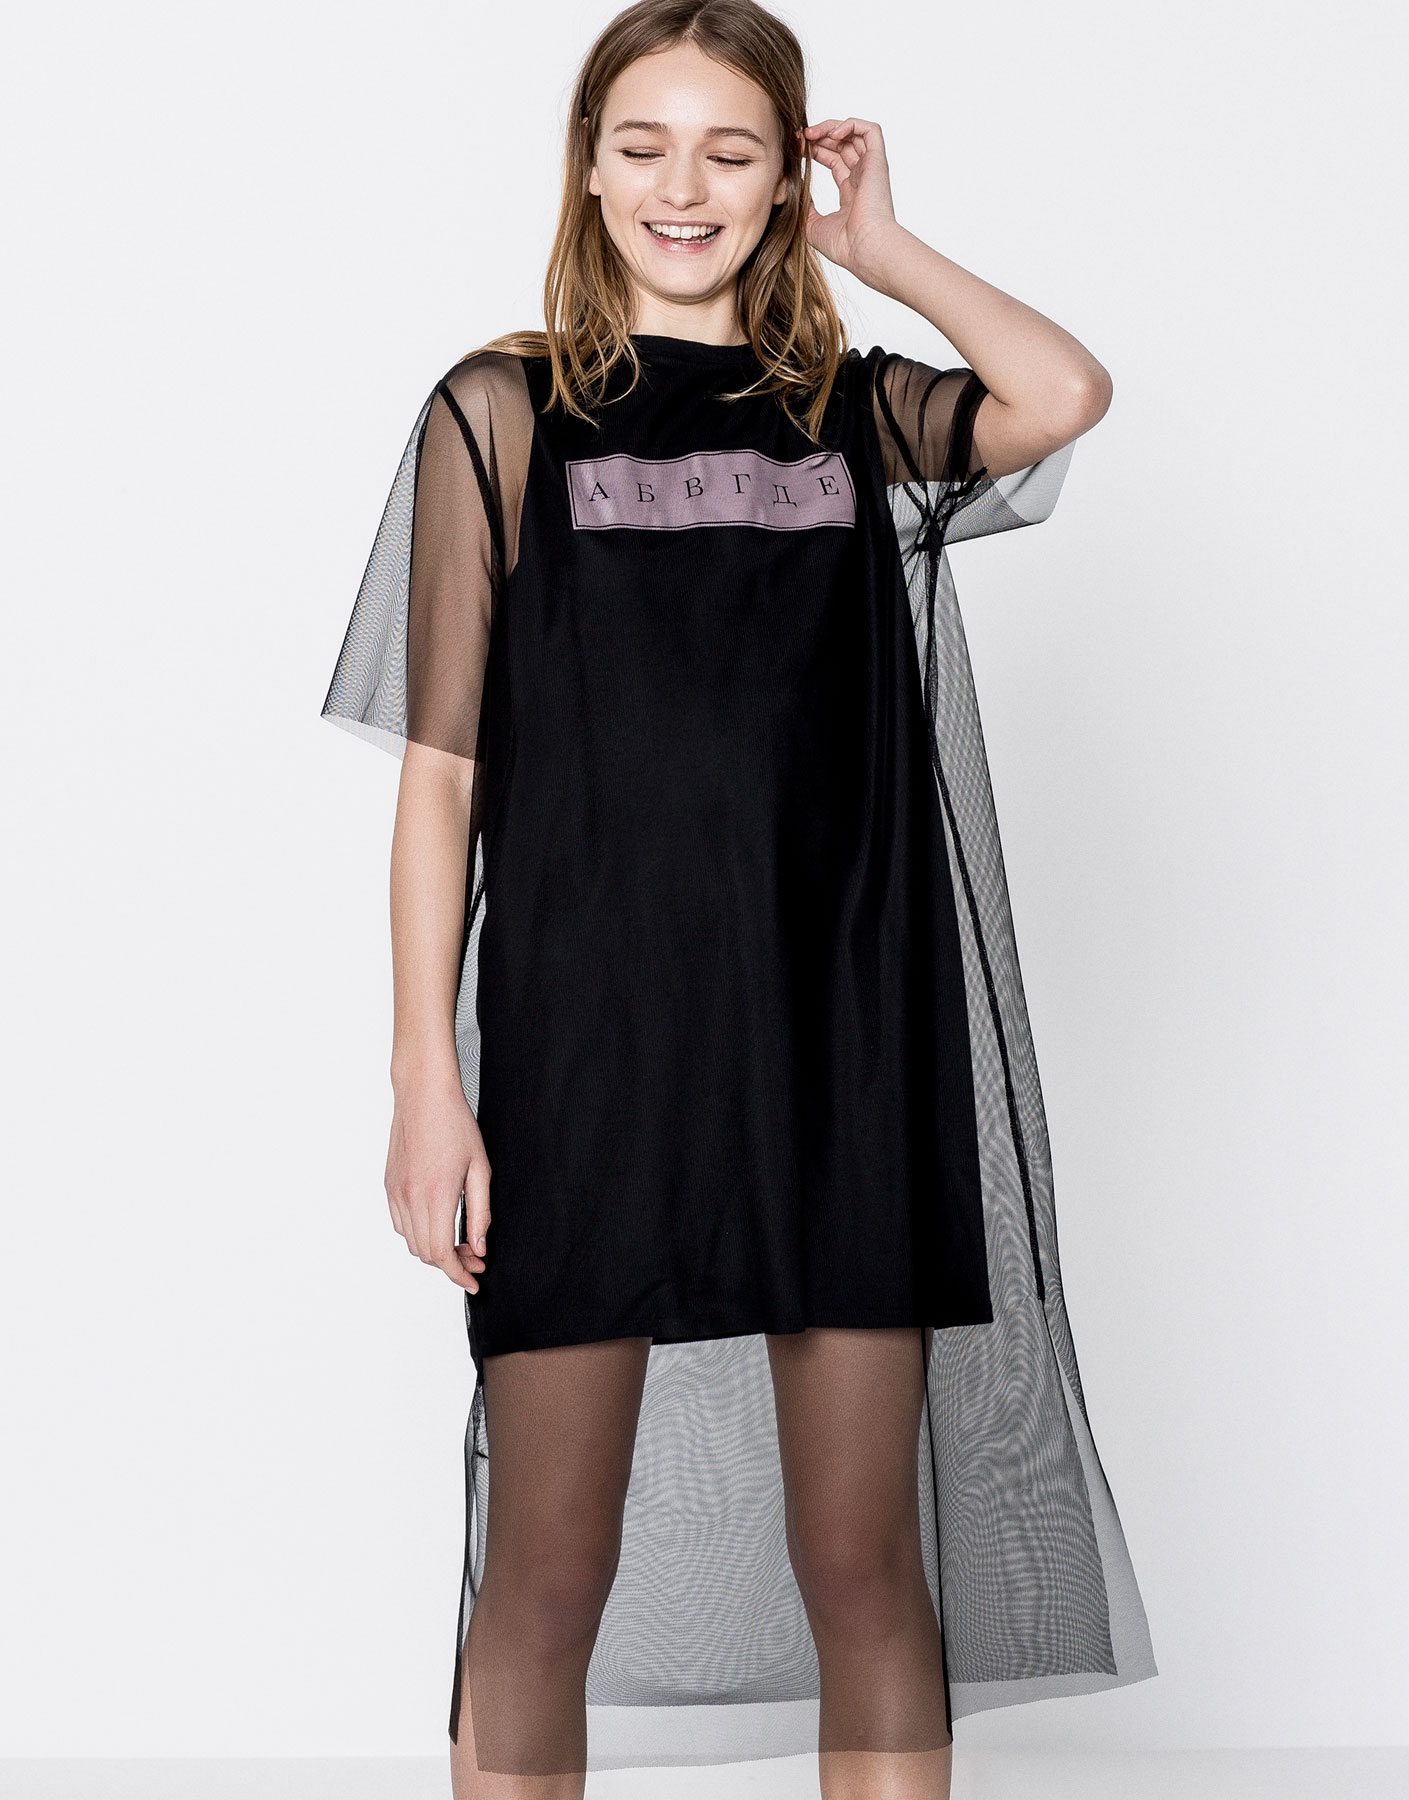 Tulle dress with text T-shirt